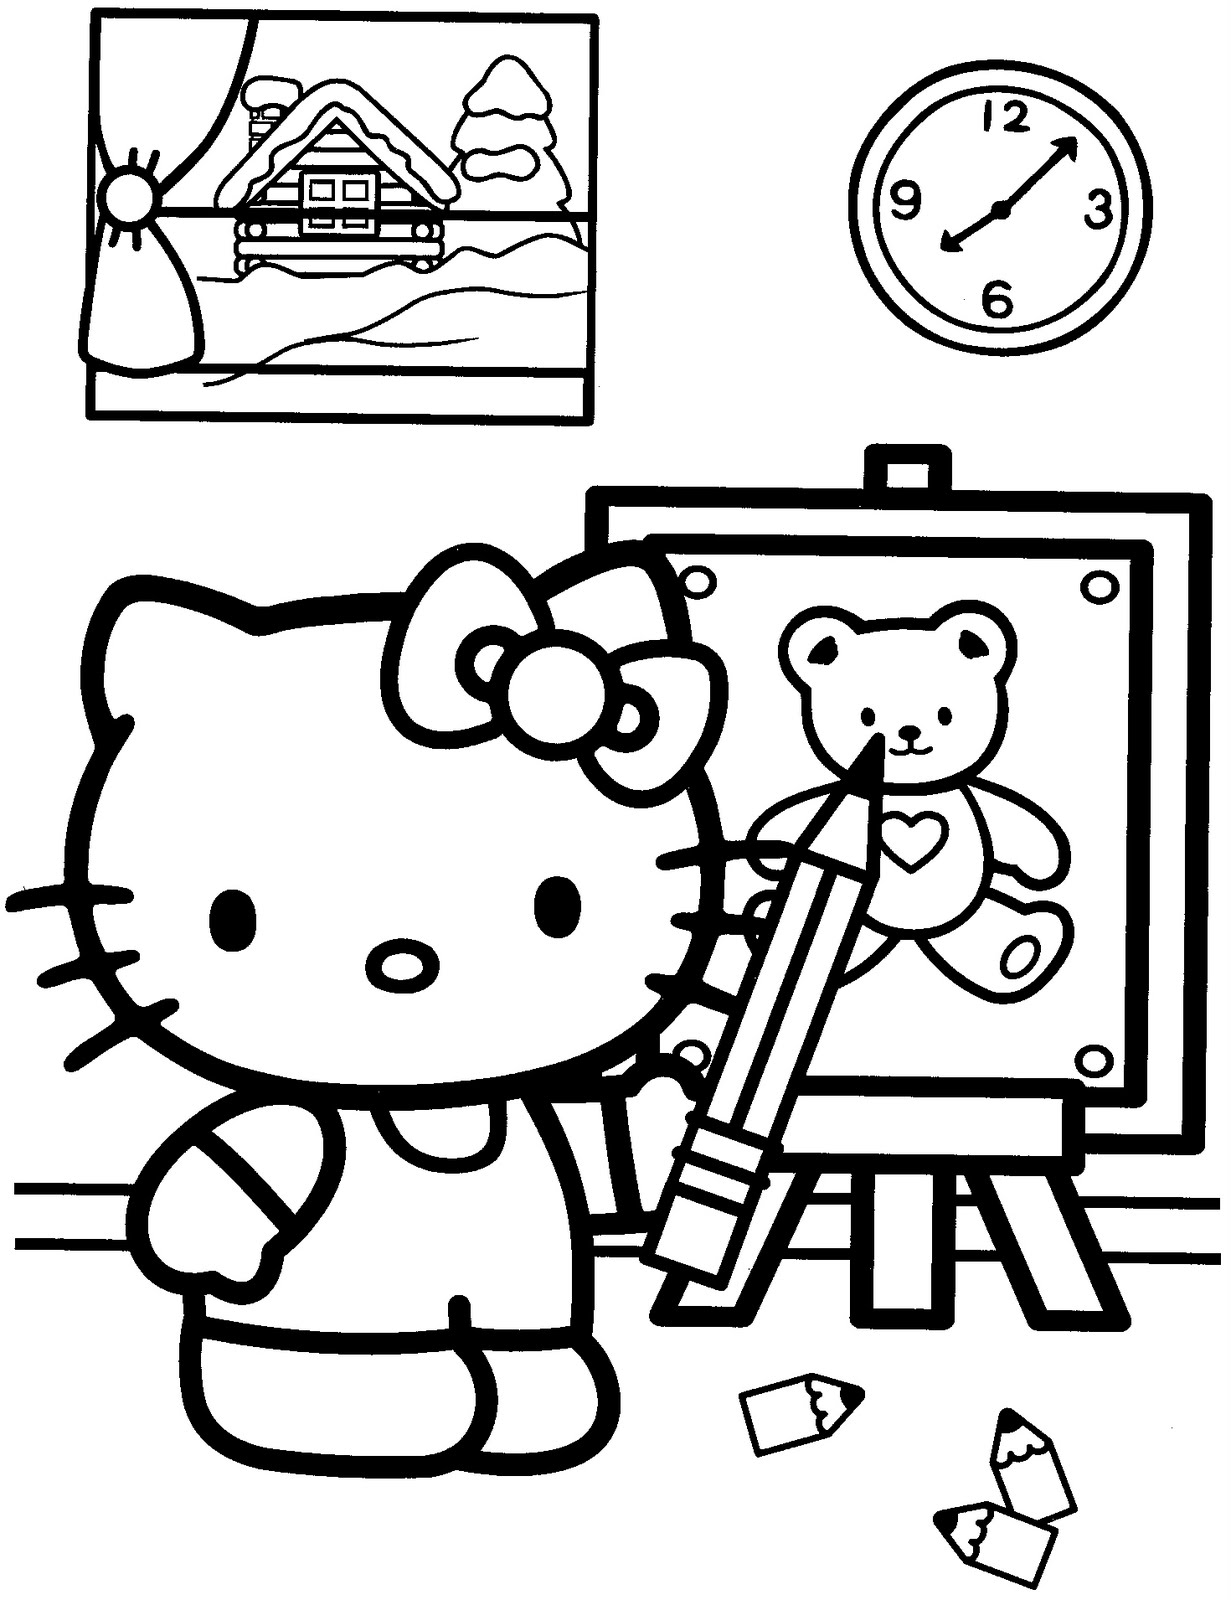 coloring hello kitty hello kitty coloring pages 02 of 15 drawing hd kitty hello coloring